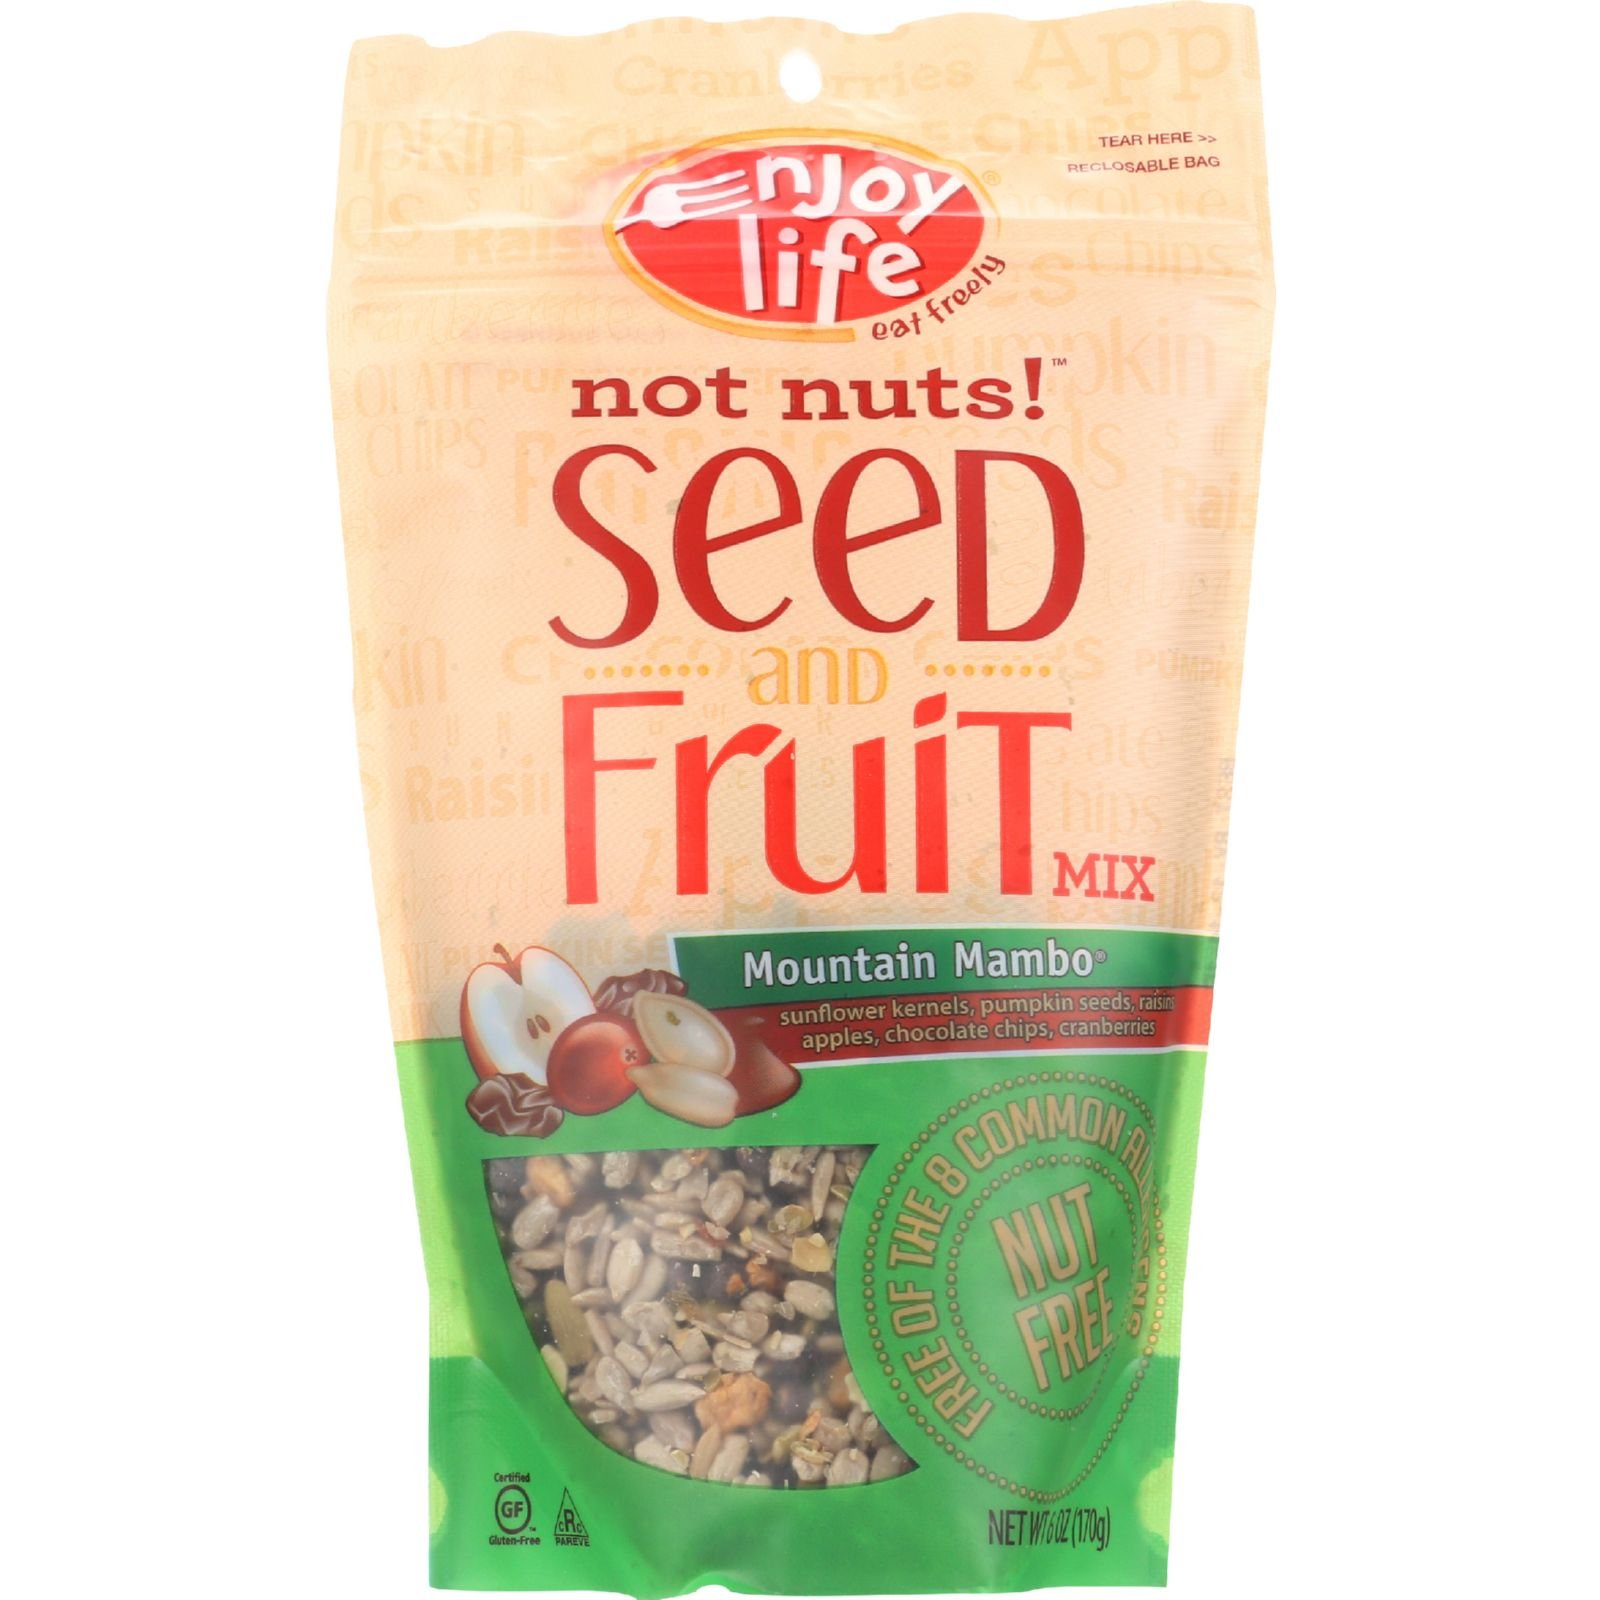 Enjoy Life Seed and Fruit Mix - Not Nuts - Mountain Mambo - Notnuts - 6 oz - case of 6 - Dairy Free - Wheat Free-Vegan